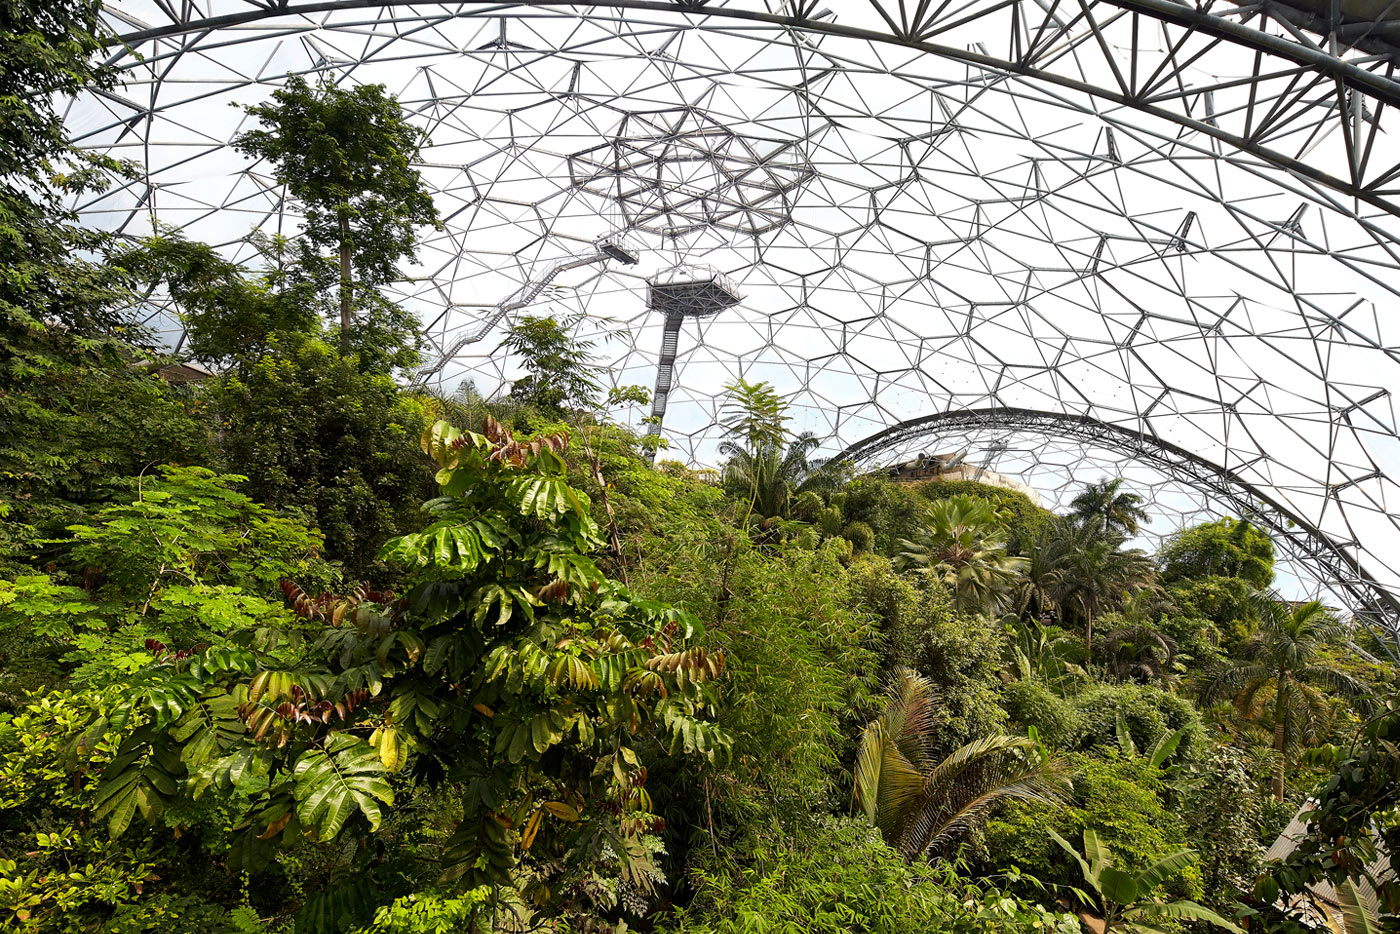 rainforest-biome-eden-project-2015-©Hufton+Crow-004-1.jpg